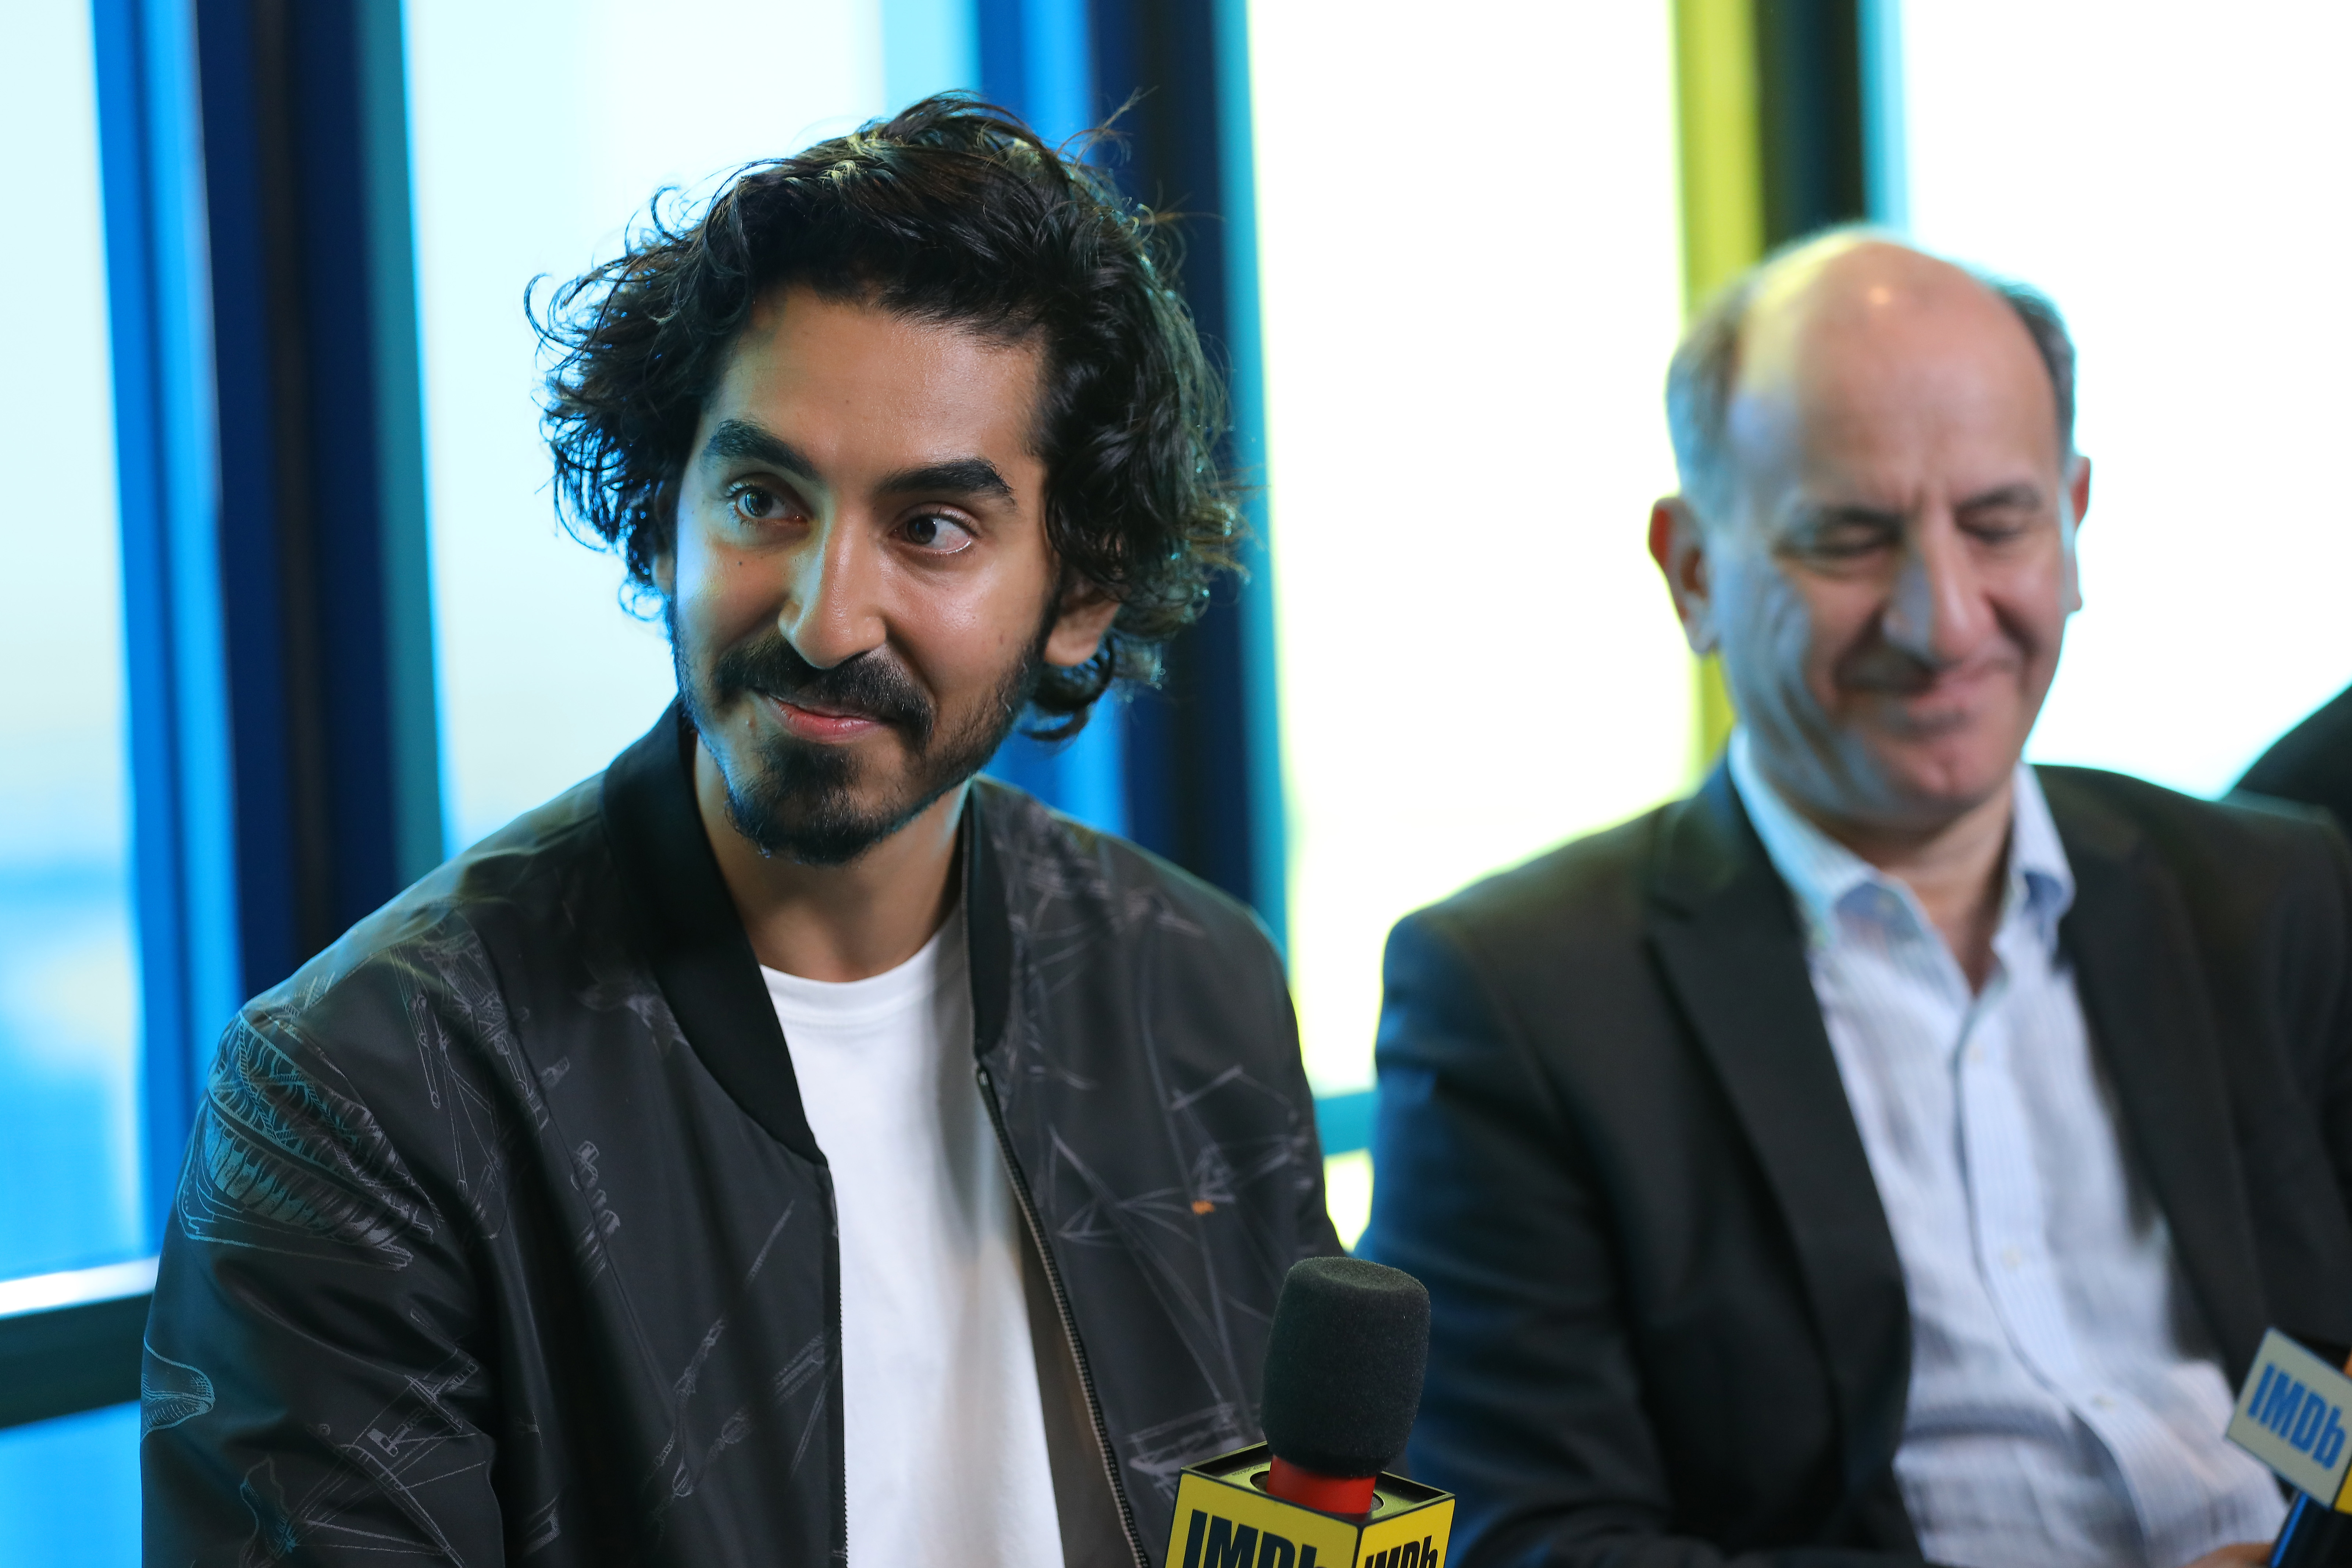 Armando Iannucci and Dev Patel at an event for The Personal History of David Copperfield (2019)